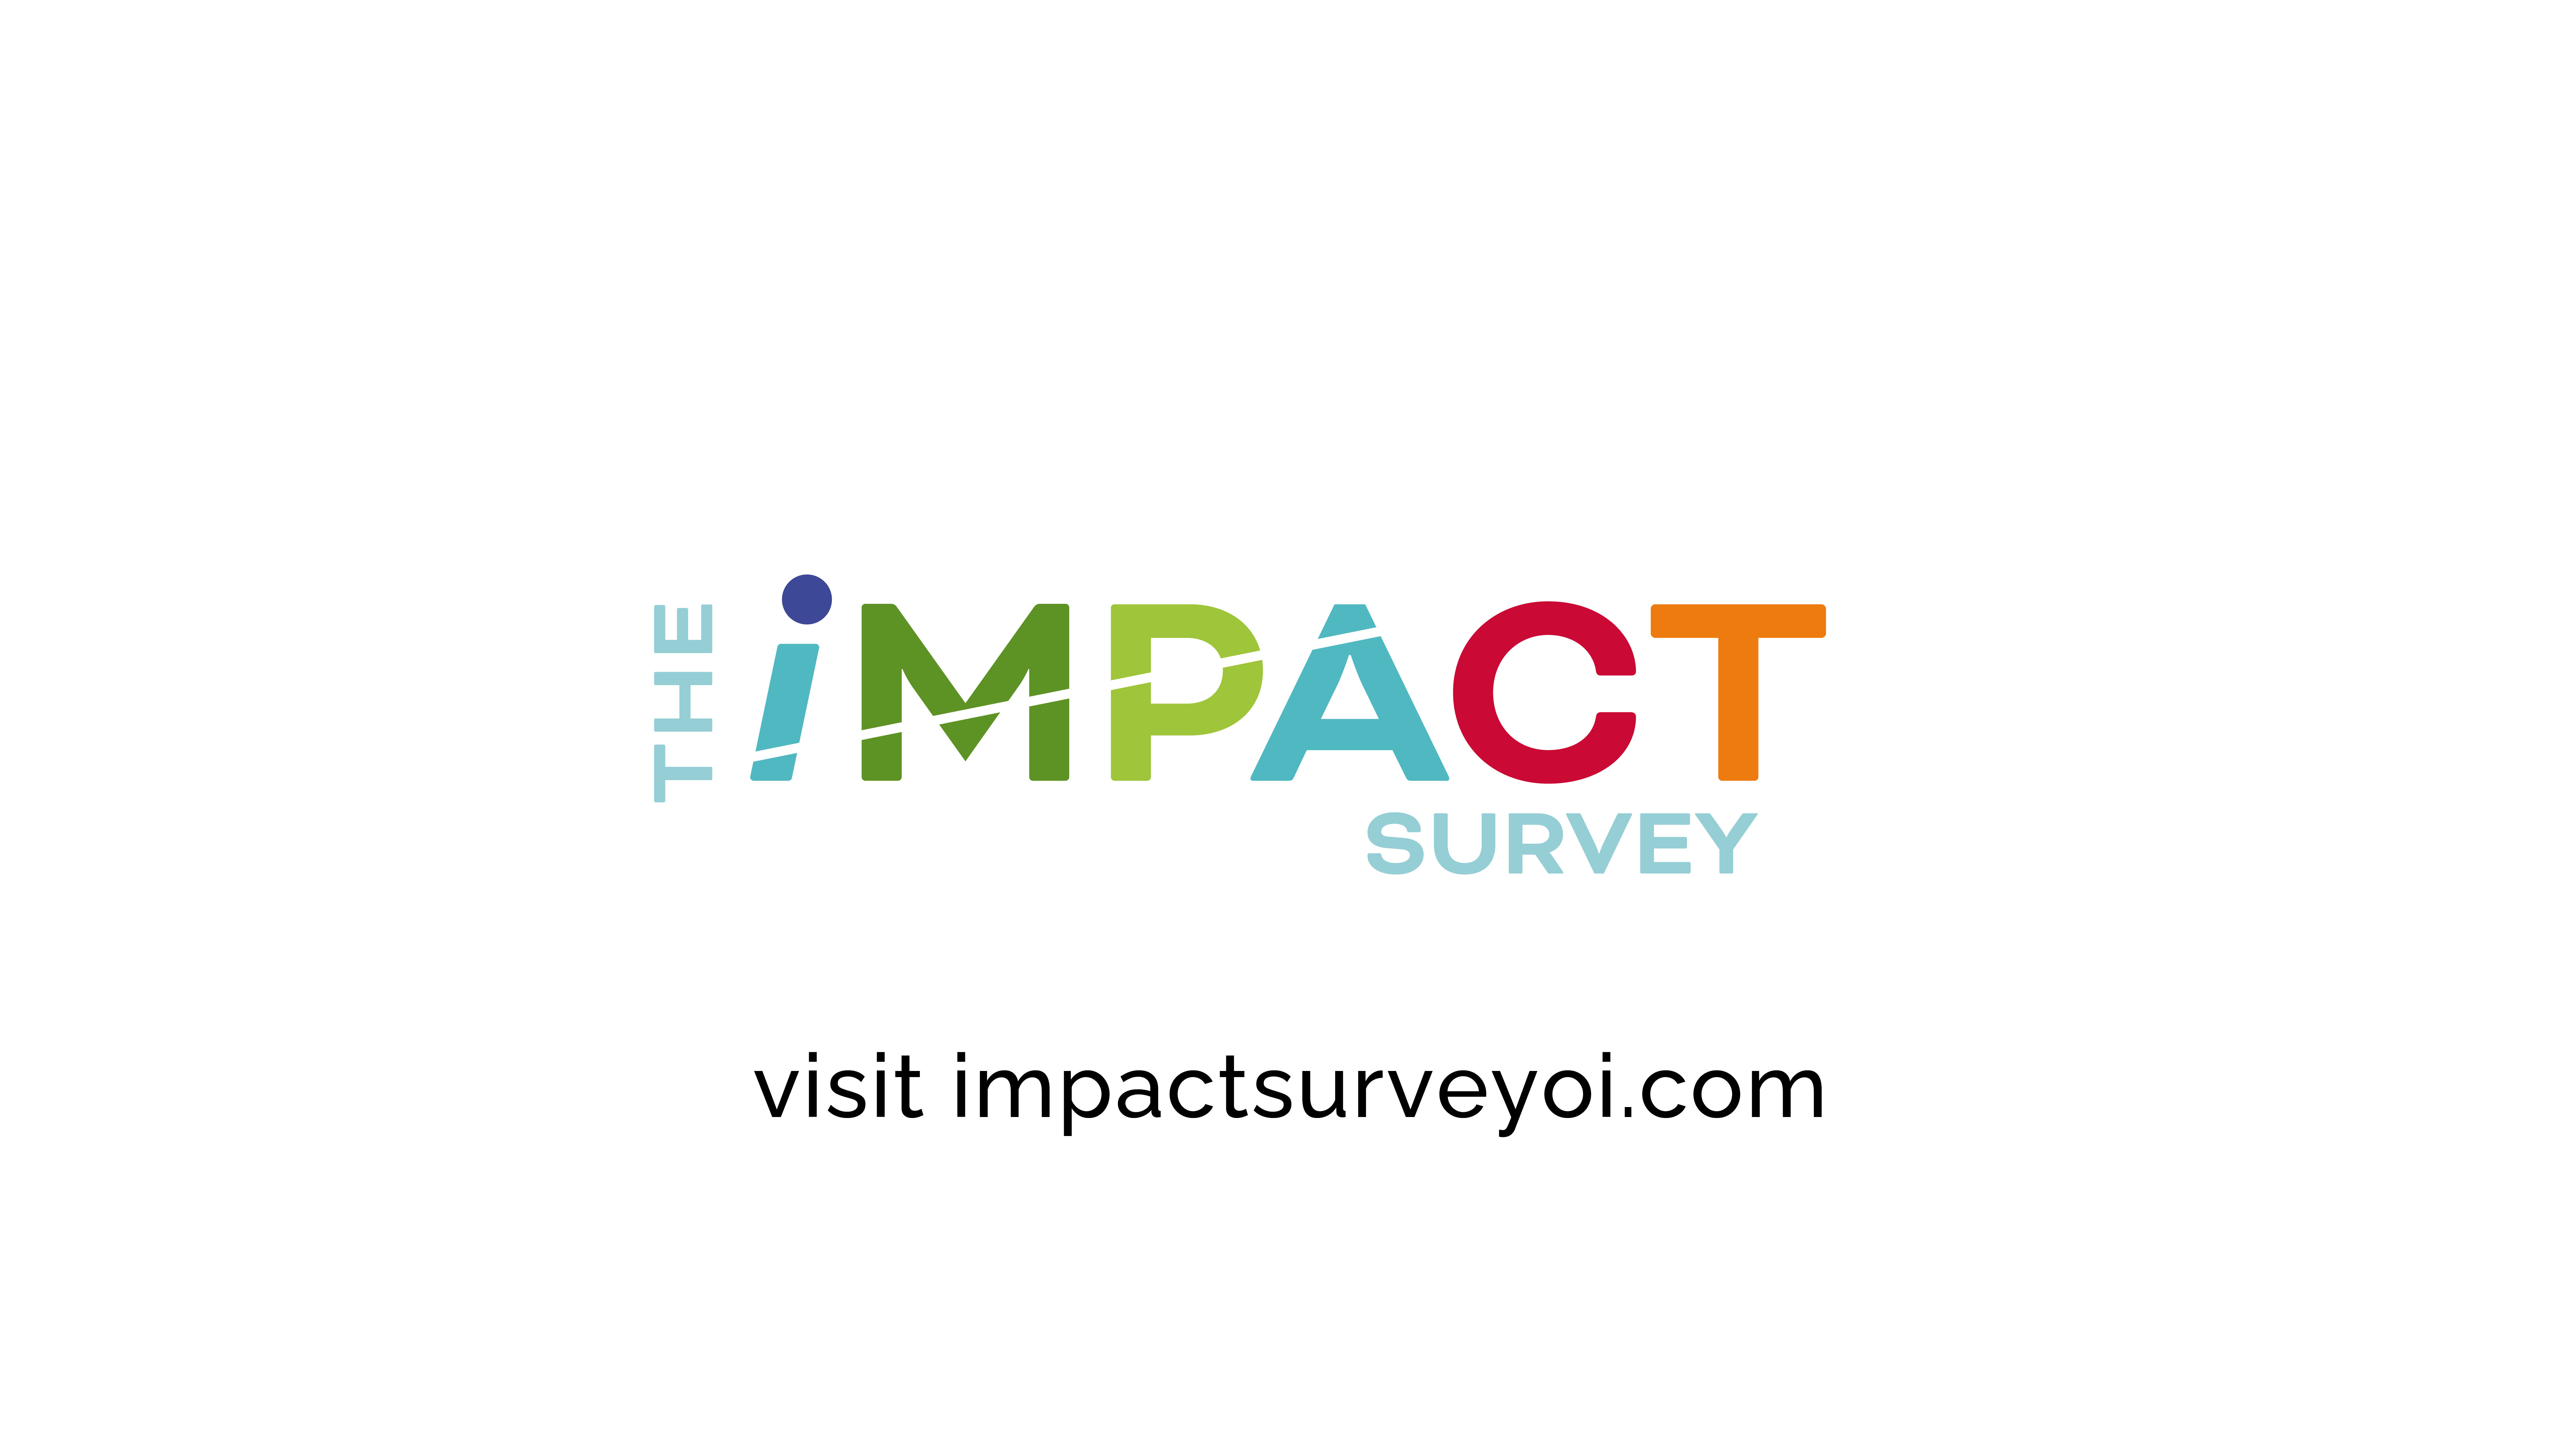 Make an IMPACT on the Future of OI Research! Complete the Impact Survey Today